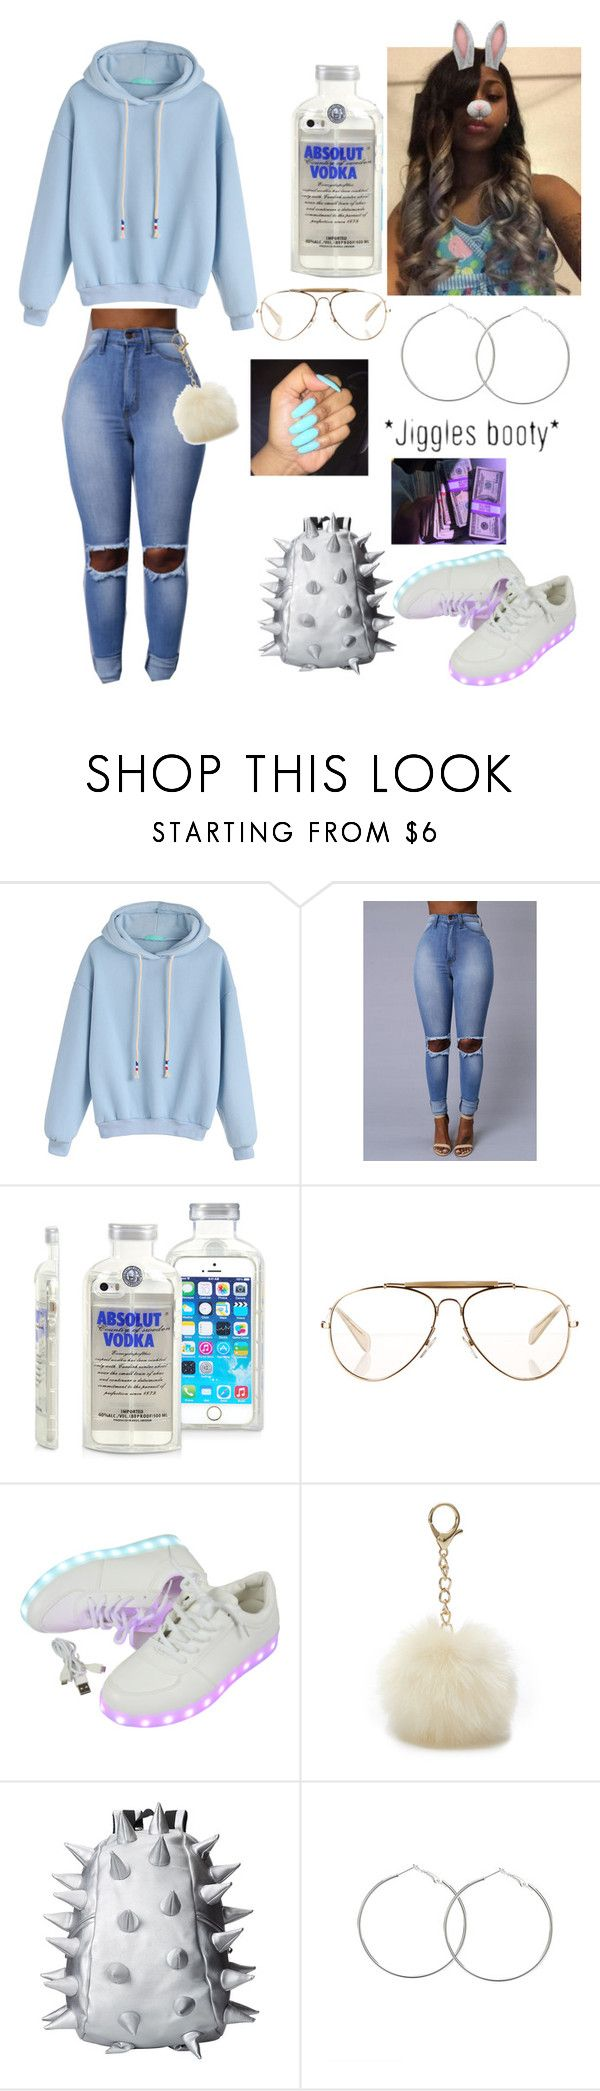 """""""Slow Jamz"""" by jadynbell ❤ liked on Polyvore featuring CÉLINE, Nine West, MadPax and AG Adriano Goldschmied"""